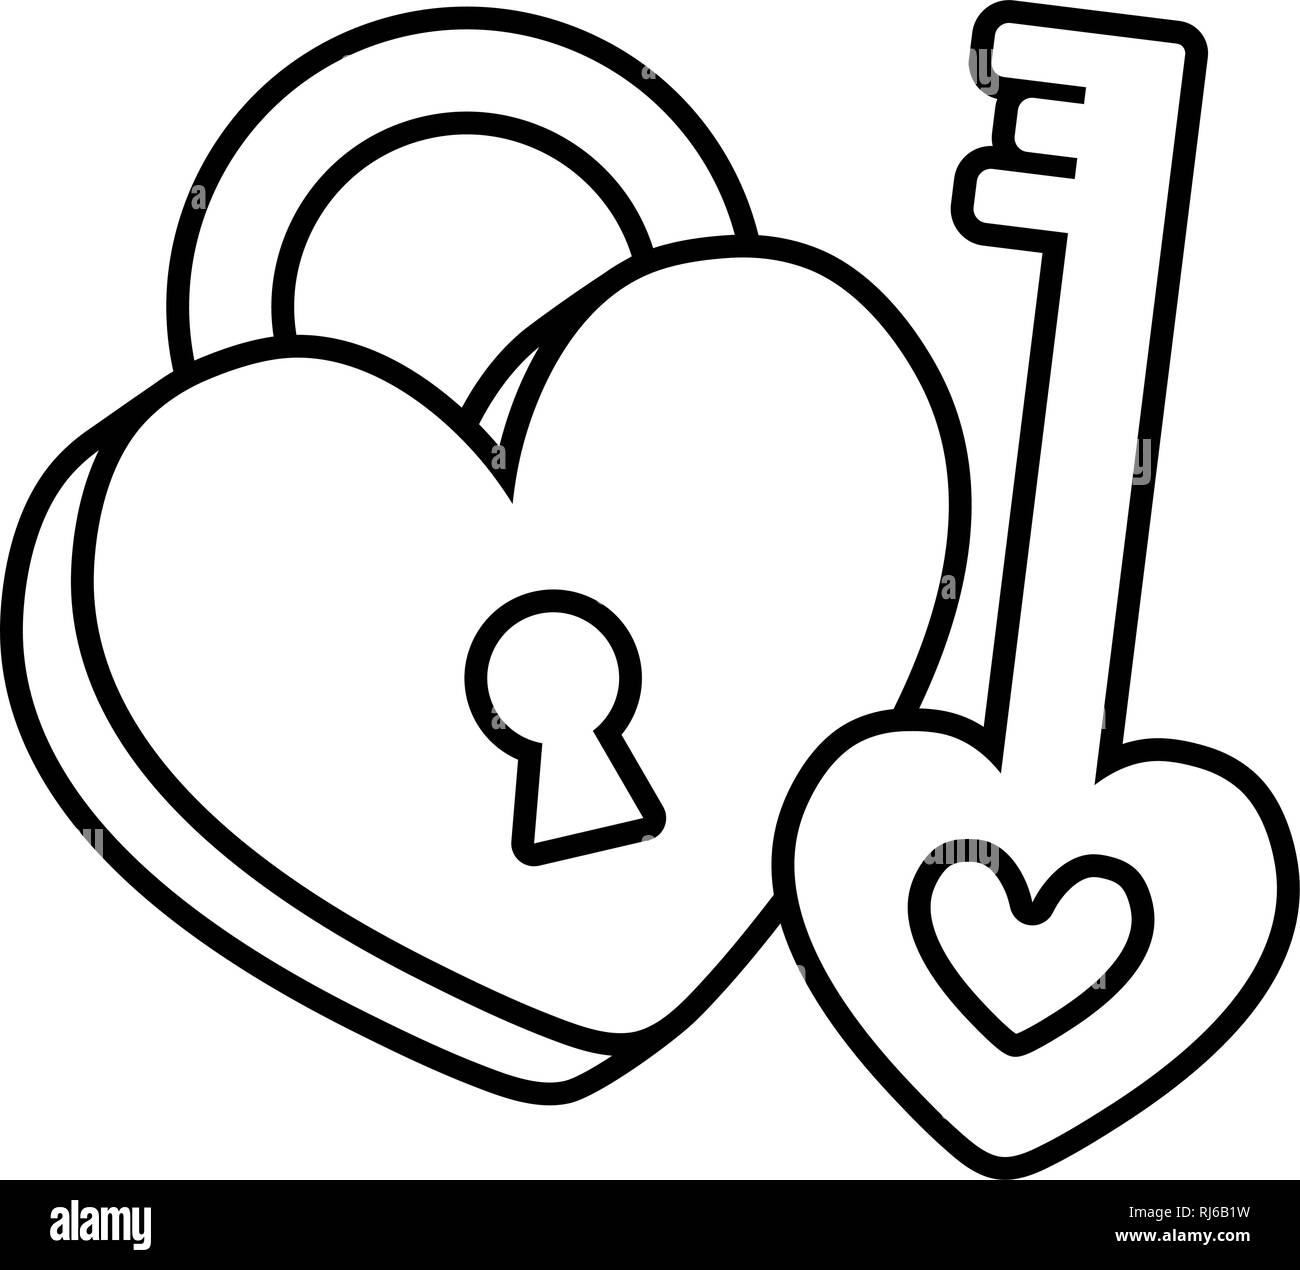 padlock with heart love icon vector illustration design - Stock Image